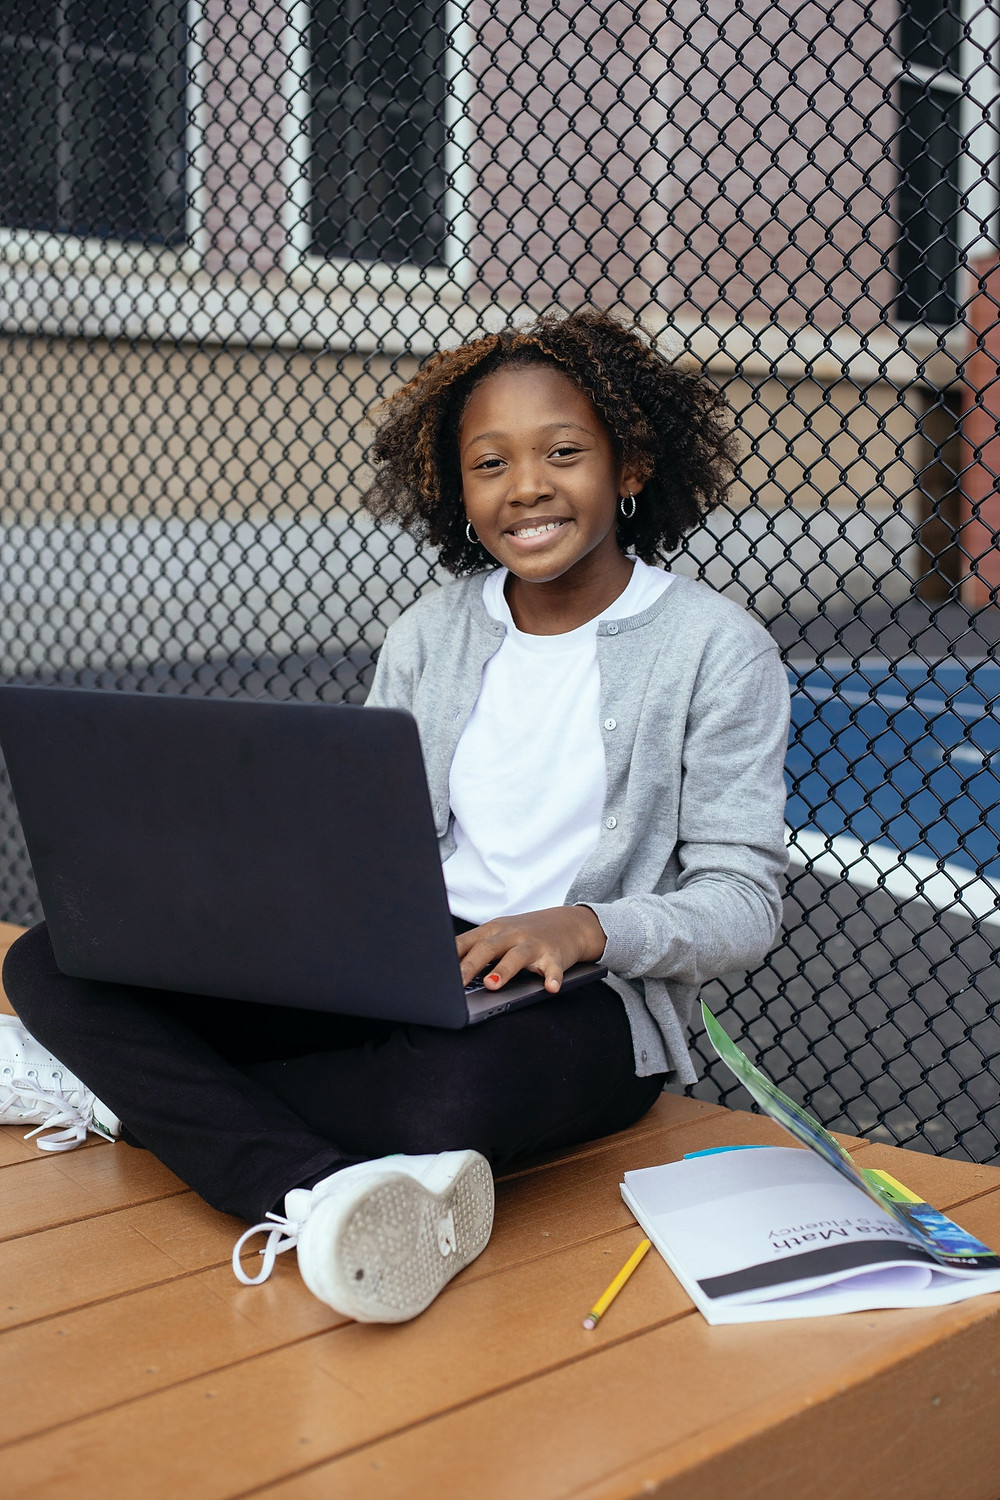 black child smiling with laptop and school workbook